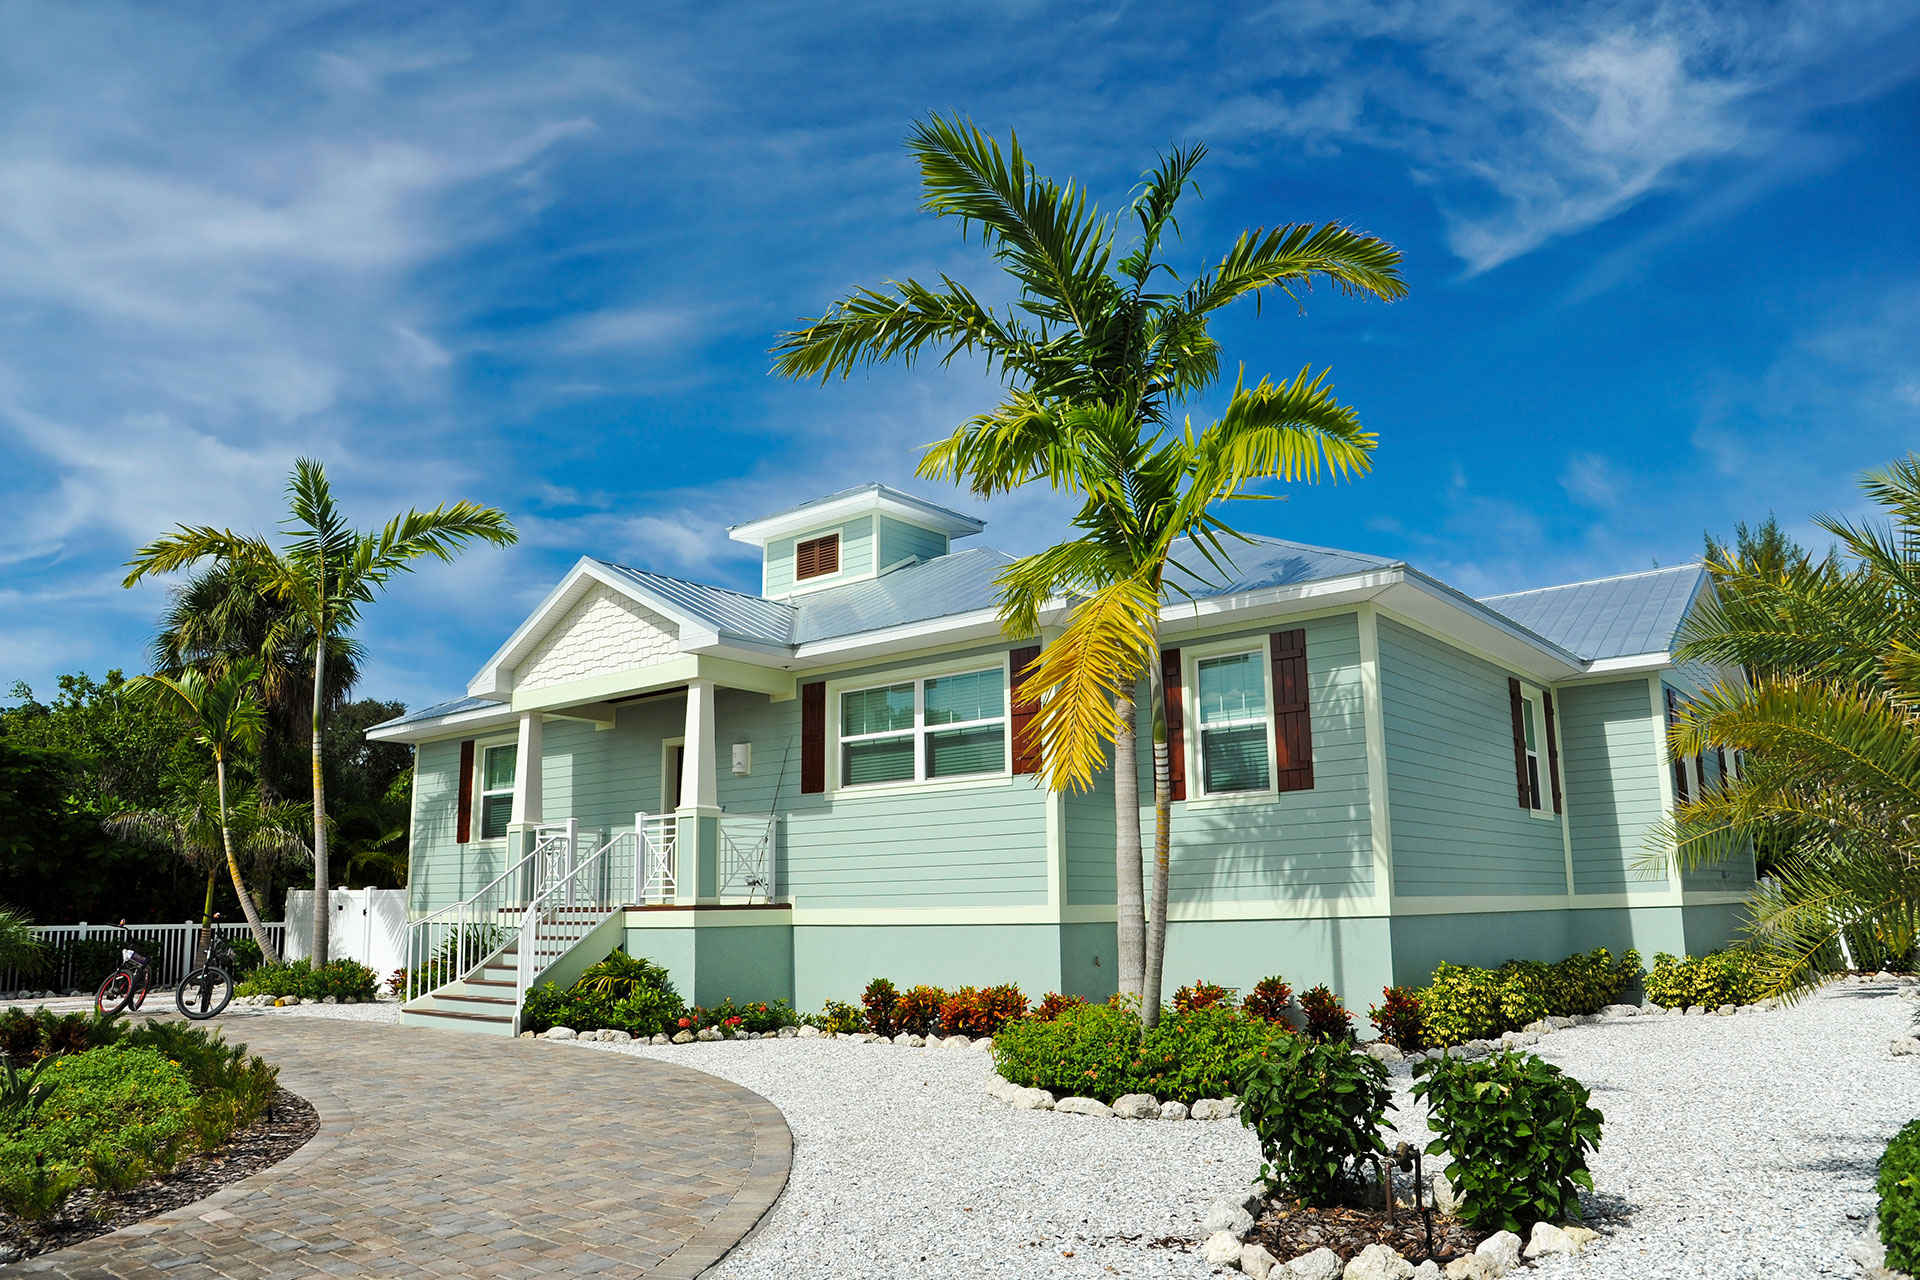 Phenomenal 8 Best Destinations For Florida Vacation Rentals Family Download Free Architecture Designs Intelgarnamadebymaigaardcom